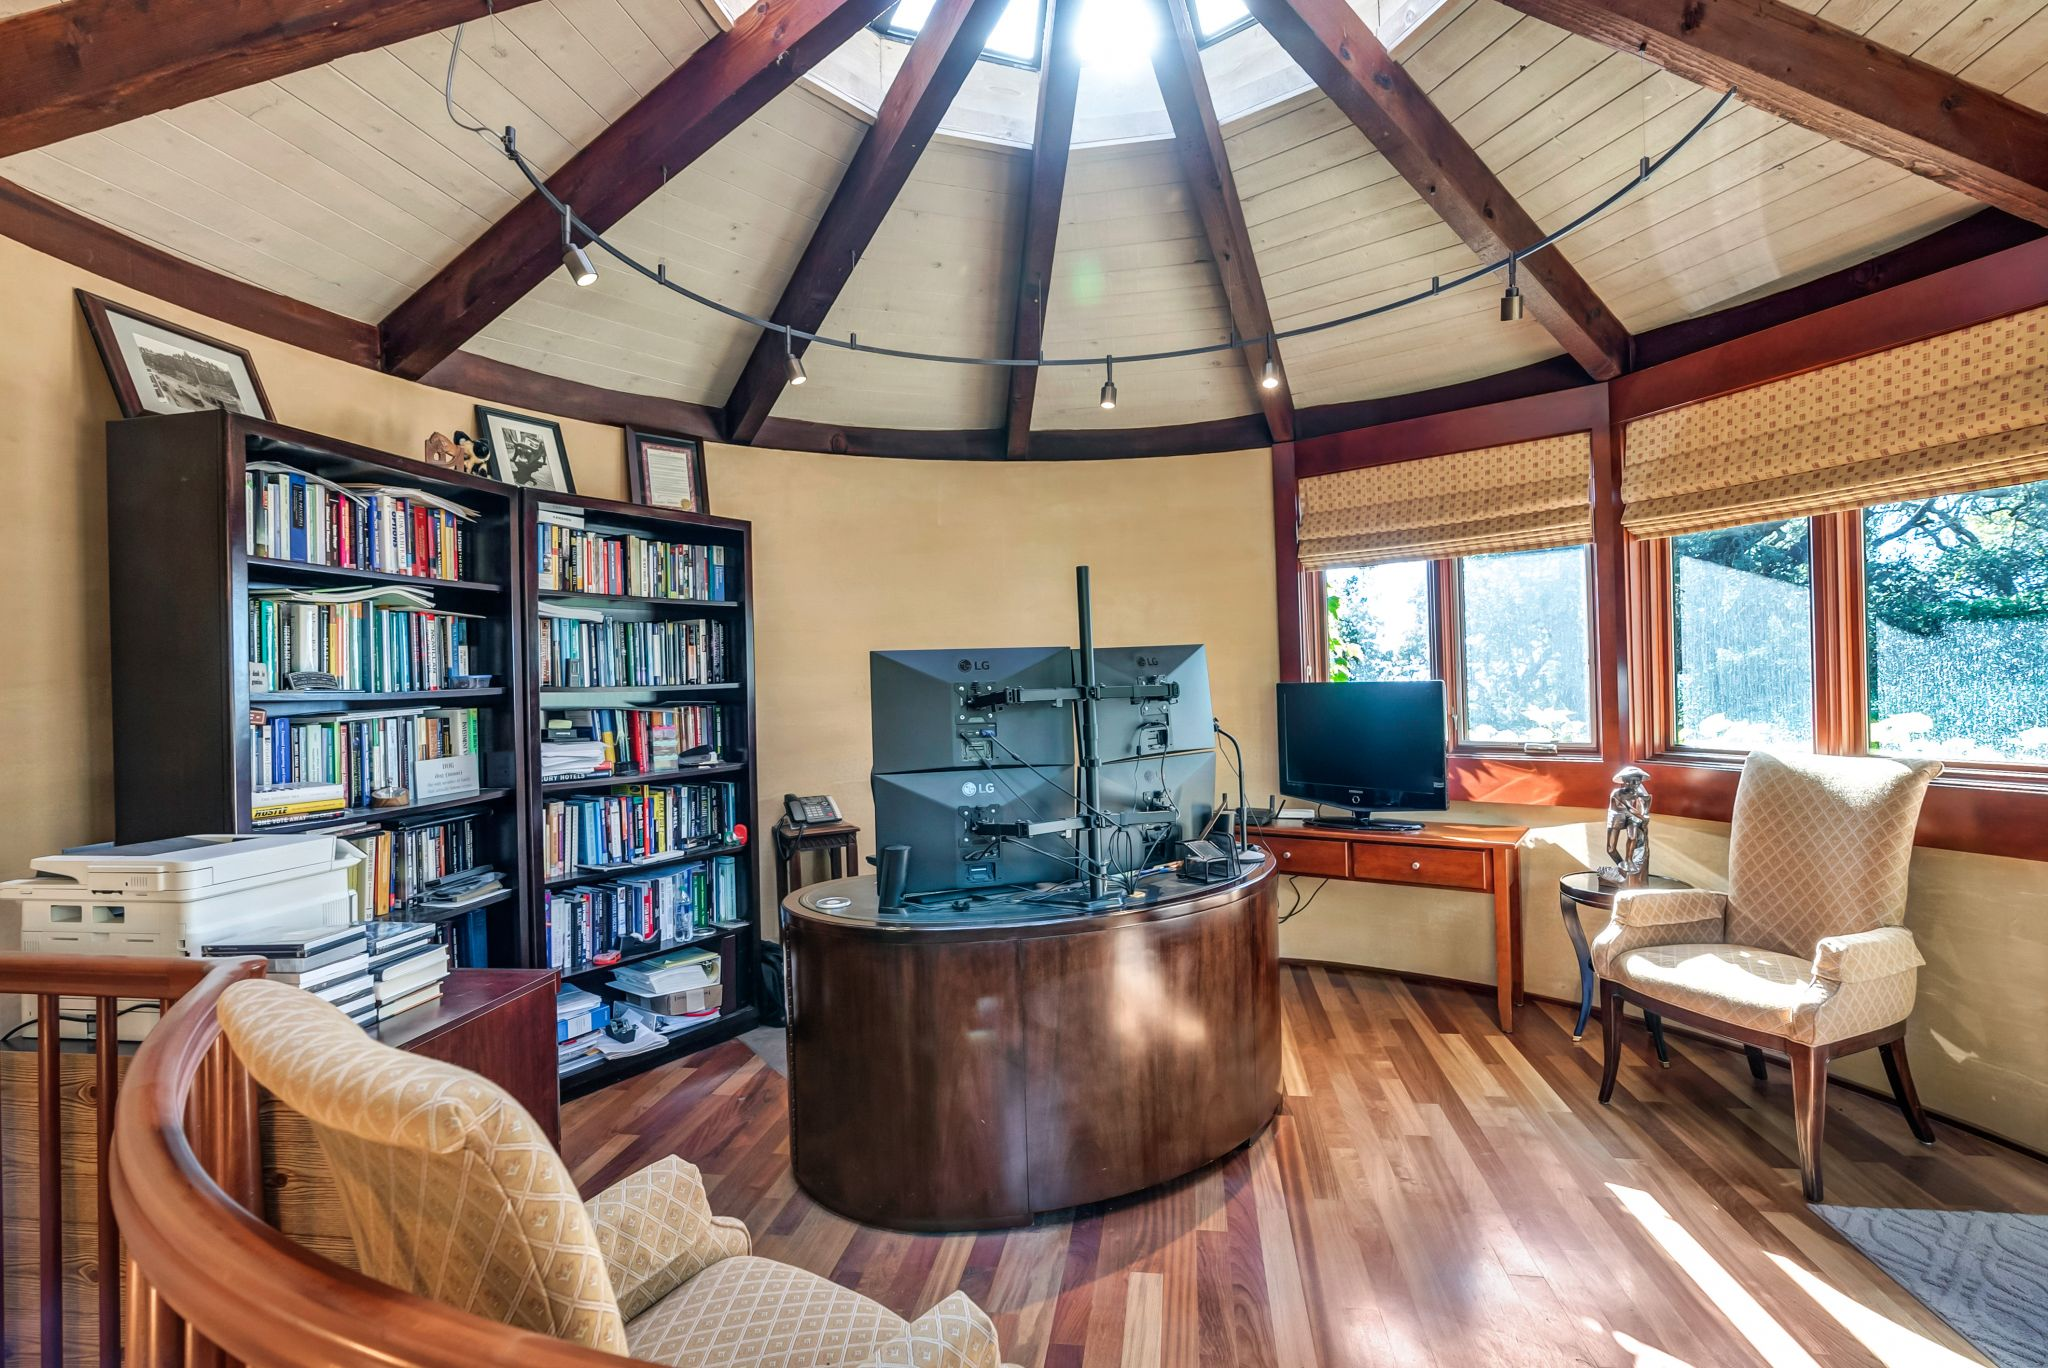 An office and library under this conical ceiling and skylight make for a unique work-from-home experience.